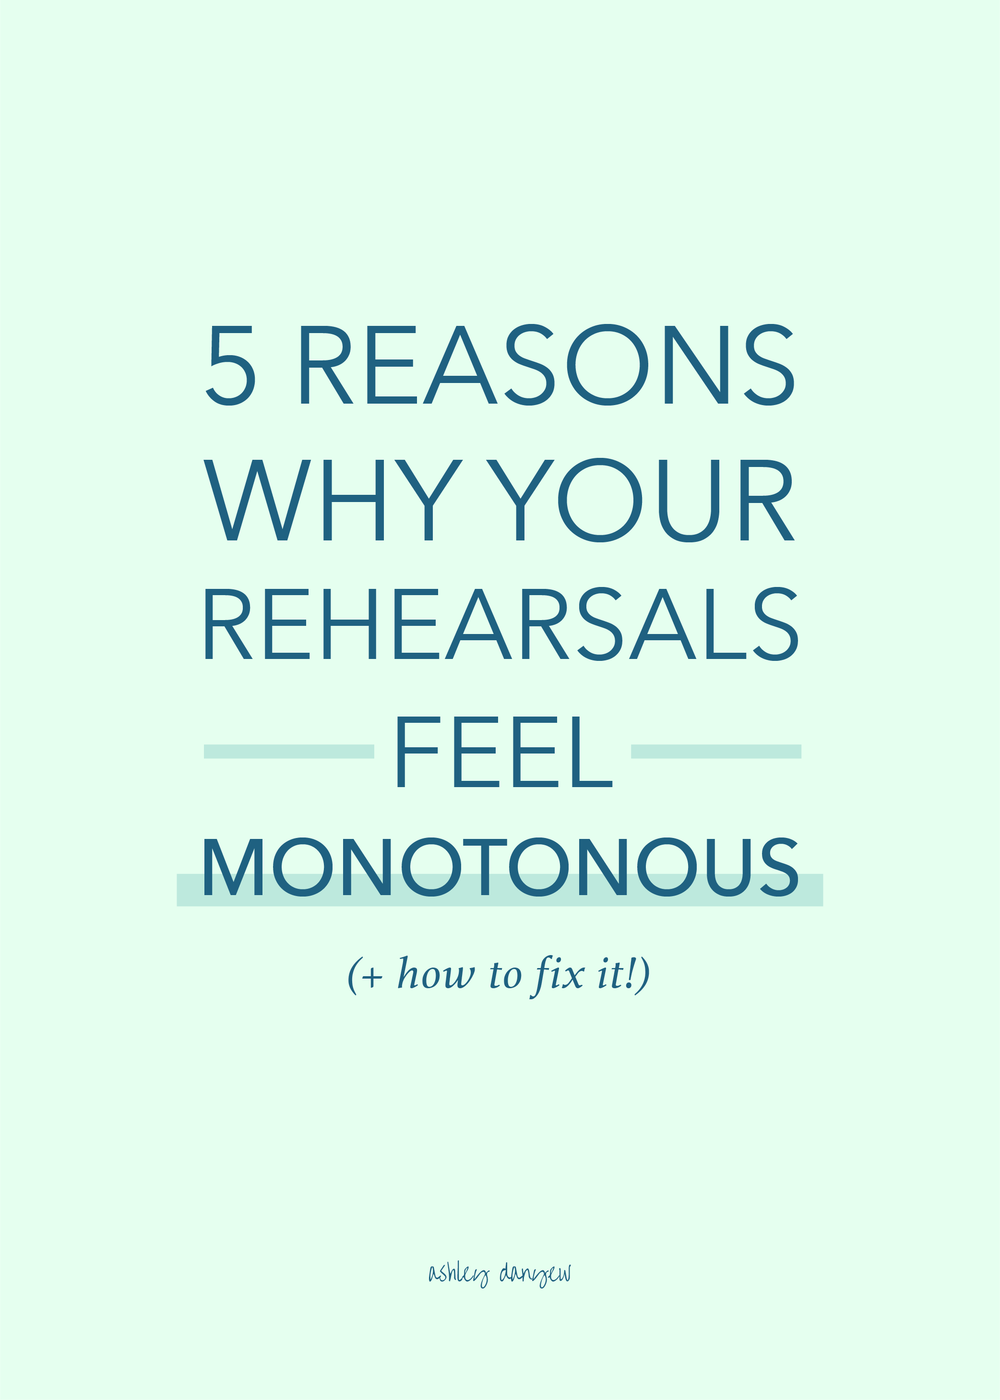 5 Reasons Why Your Rehearsals Feel Monotonous (+ How to Fix It!)